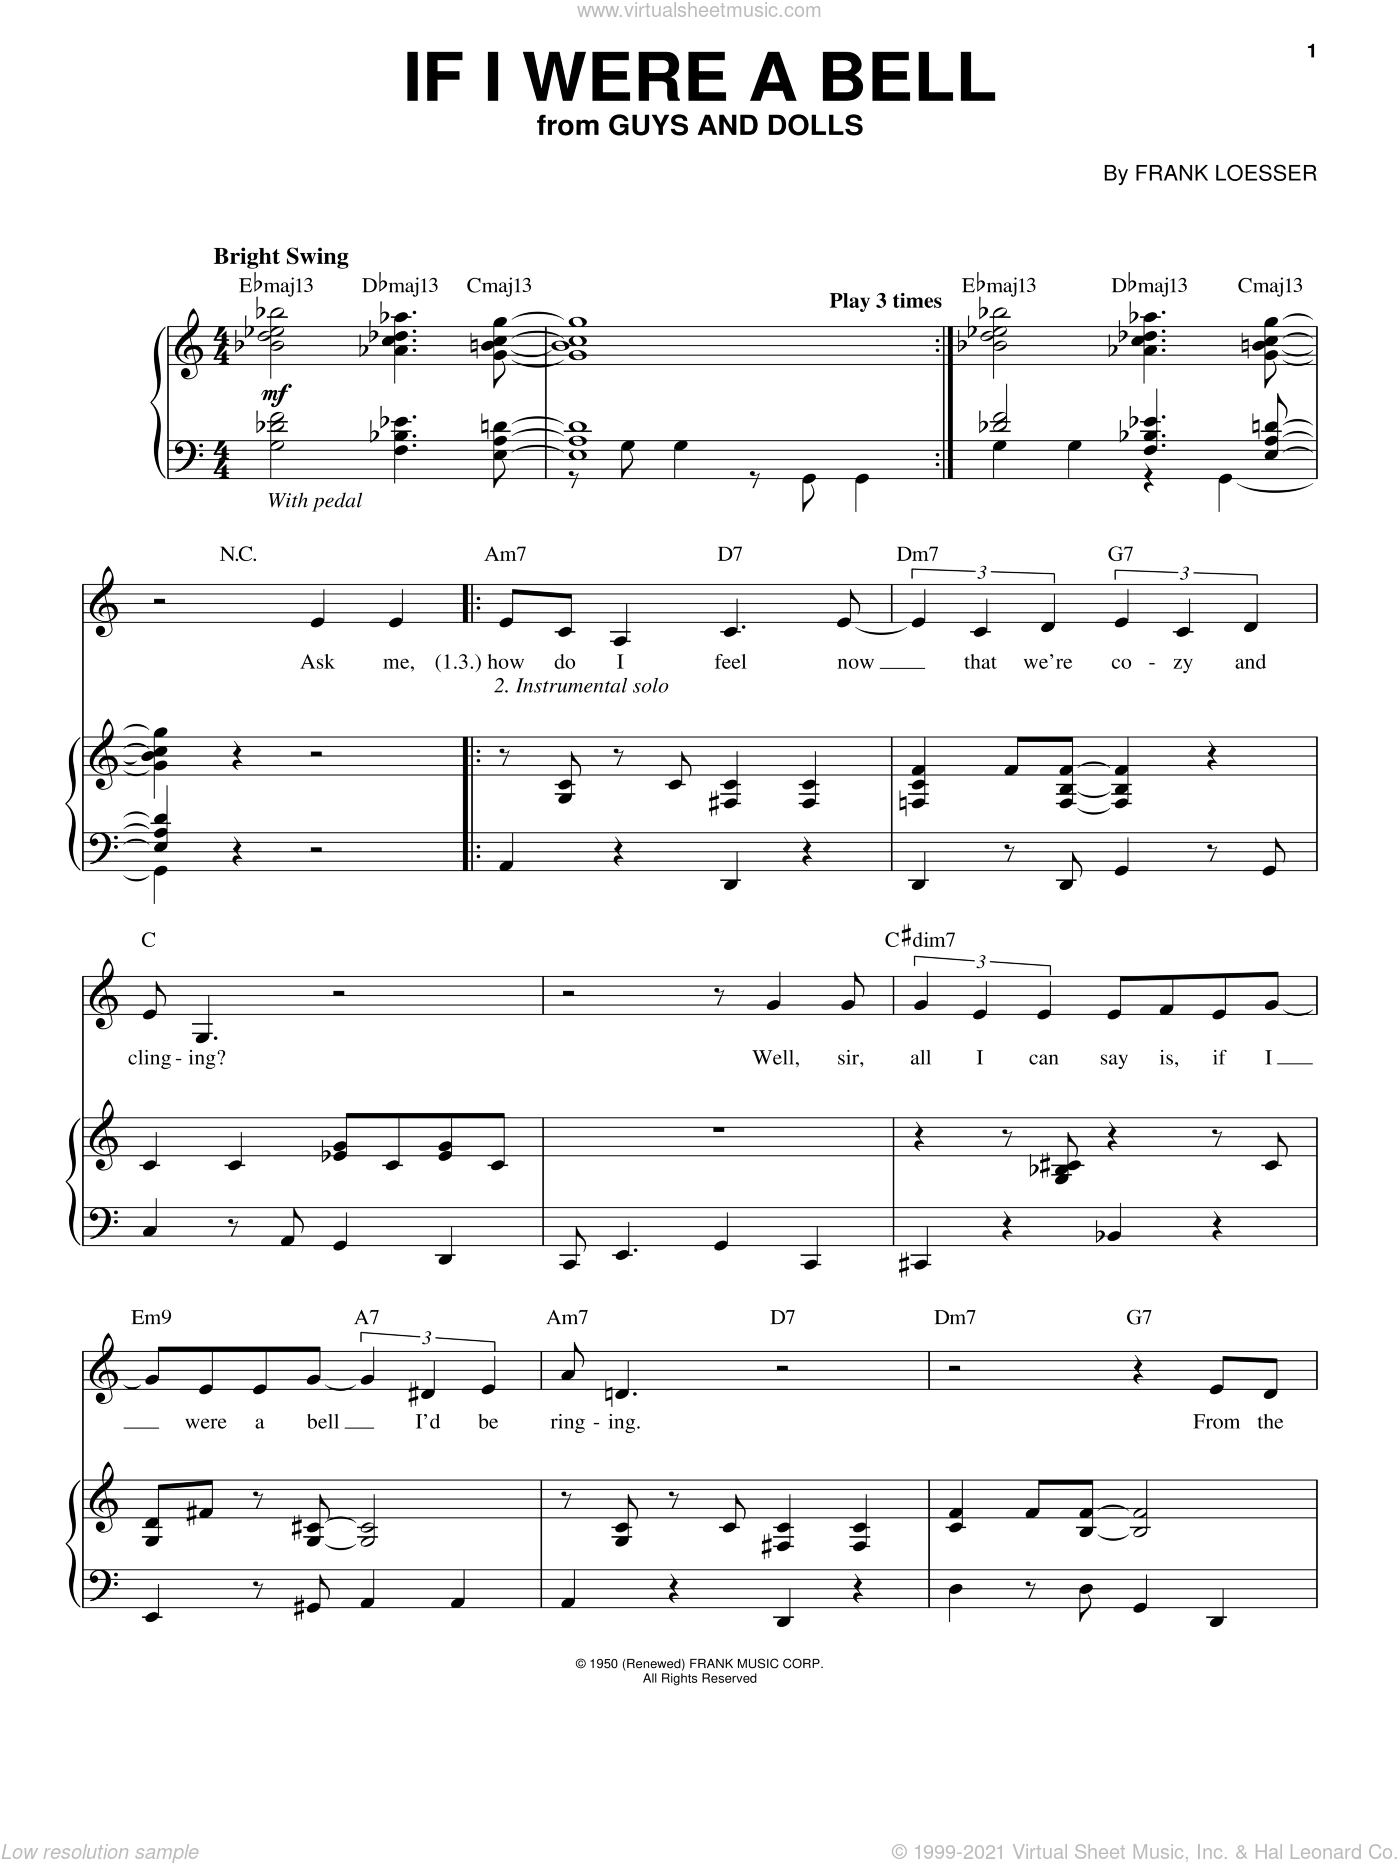 If I Were A Bell sheet music for voice and piano by Blossom Dearie, Guys And Dolls (Musical) and Frank Loesser, intermediate skill level